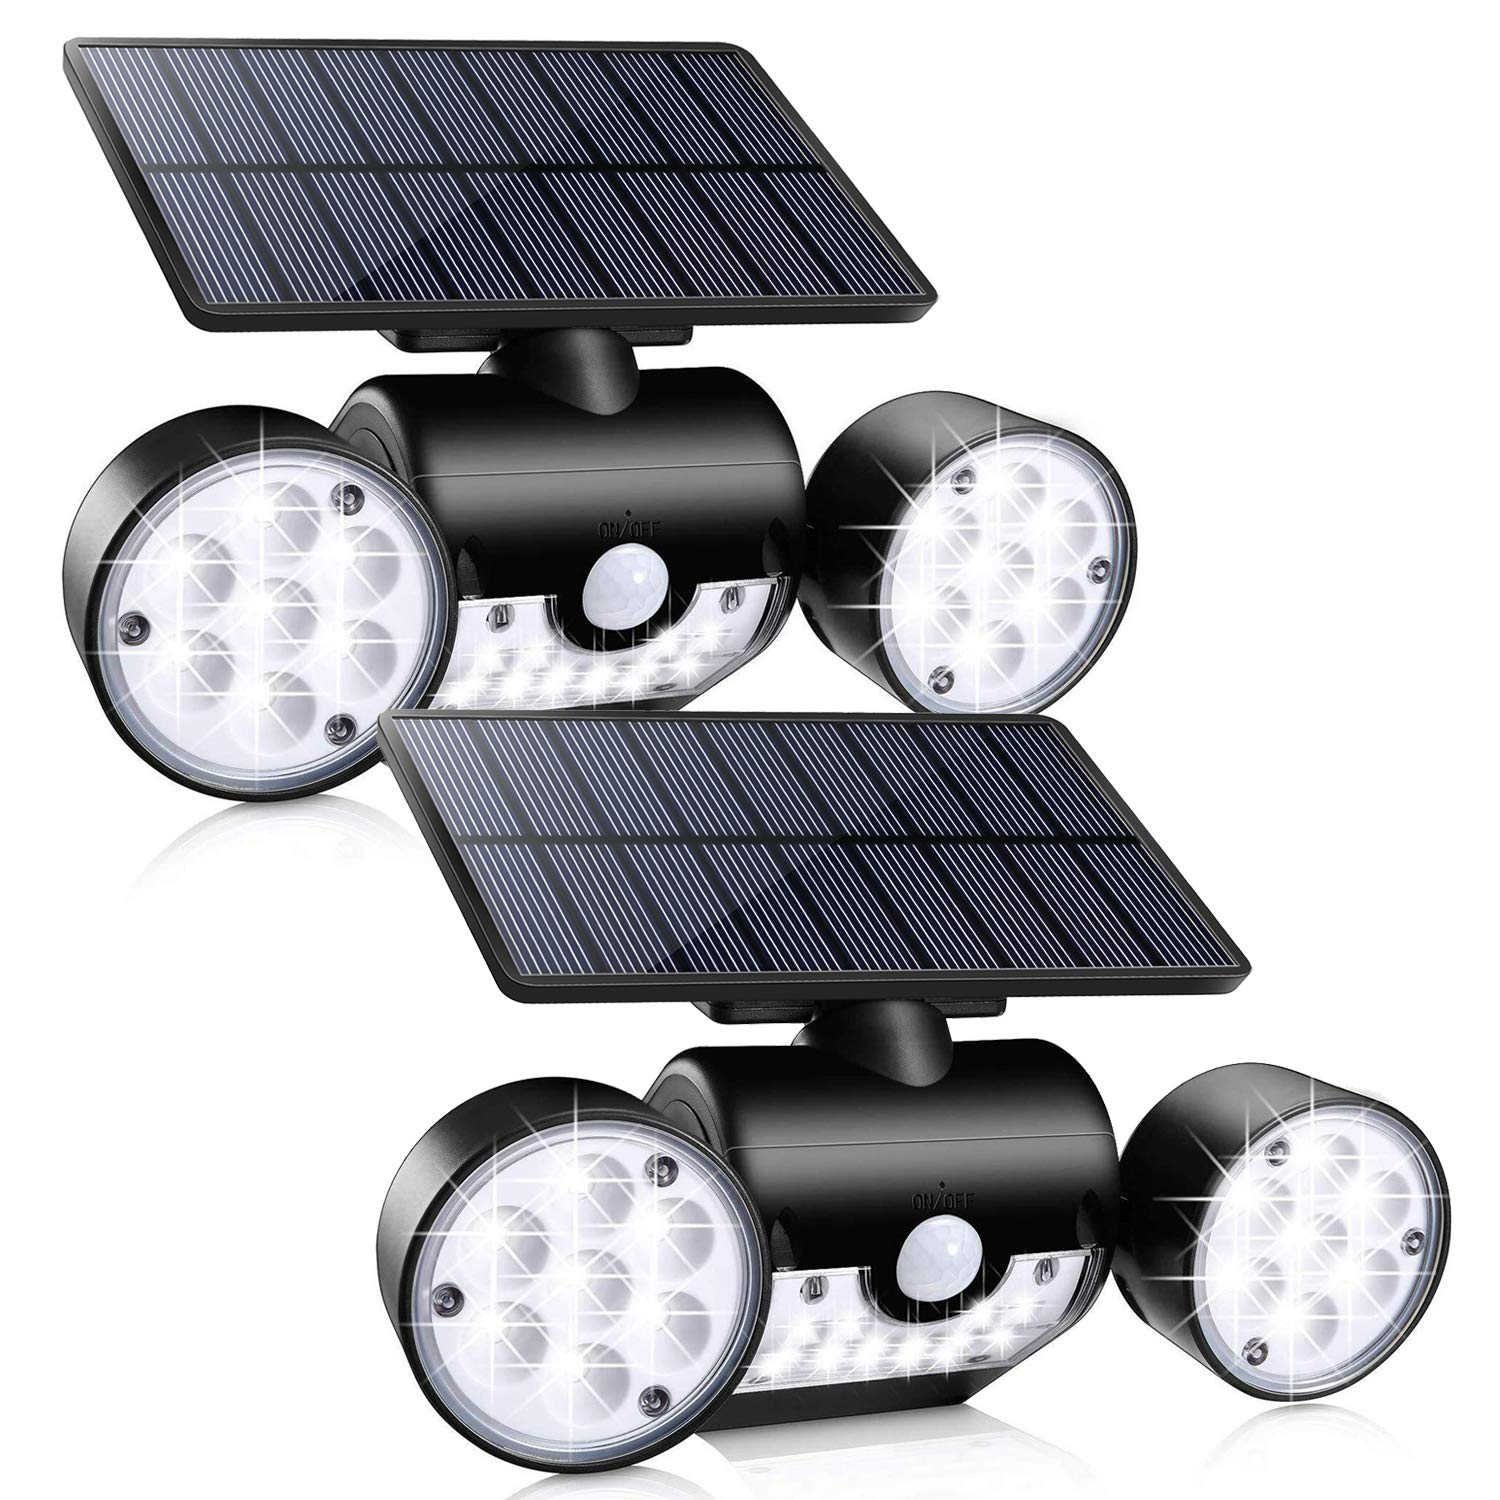 Outdoor Solar Lights, Ollivage 30 LED Solar Security Lights with Motion Sensor Dual Head Spotlights IP65 Waterproof 360° Adjustable LED Solar Motion Lights for Front Door Garage Patio Deck, 2 Pack by Ollivage